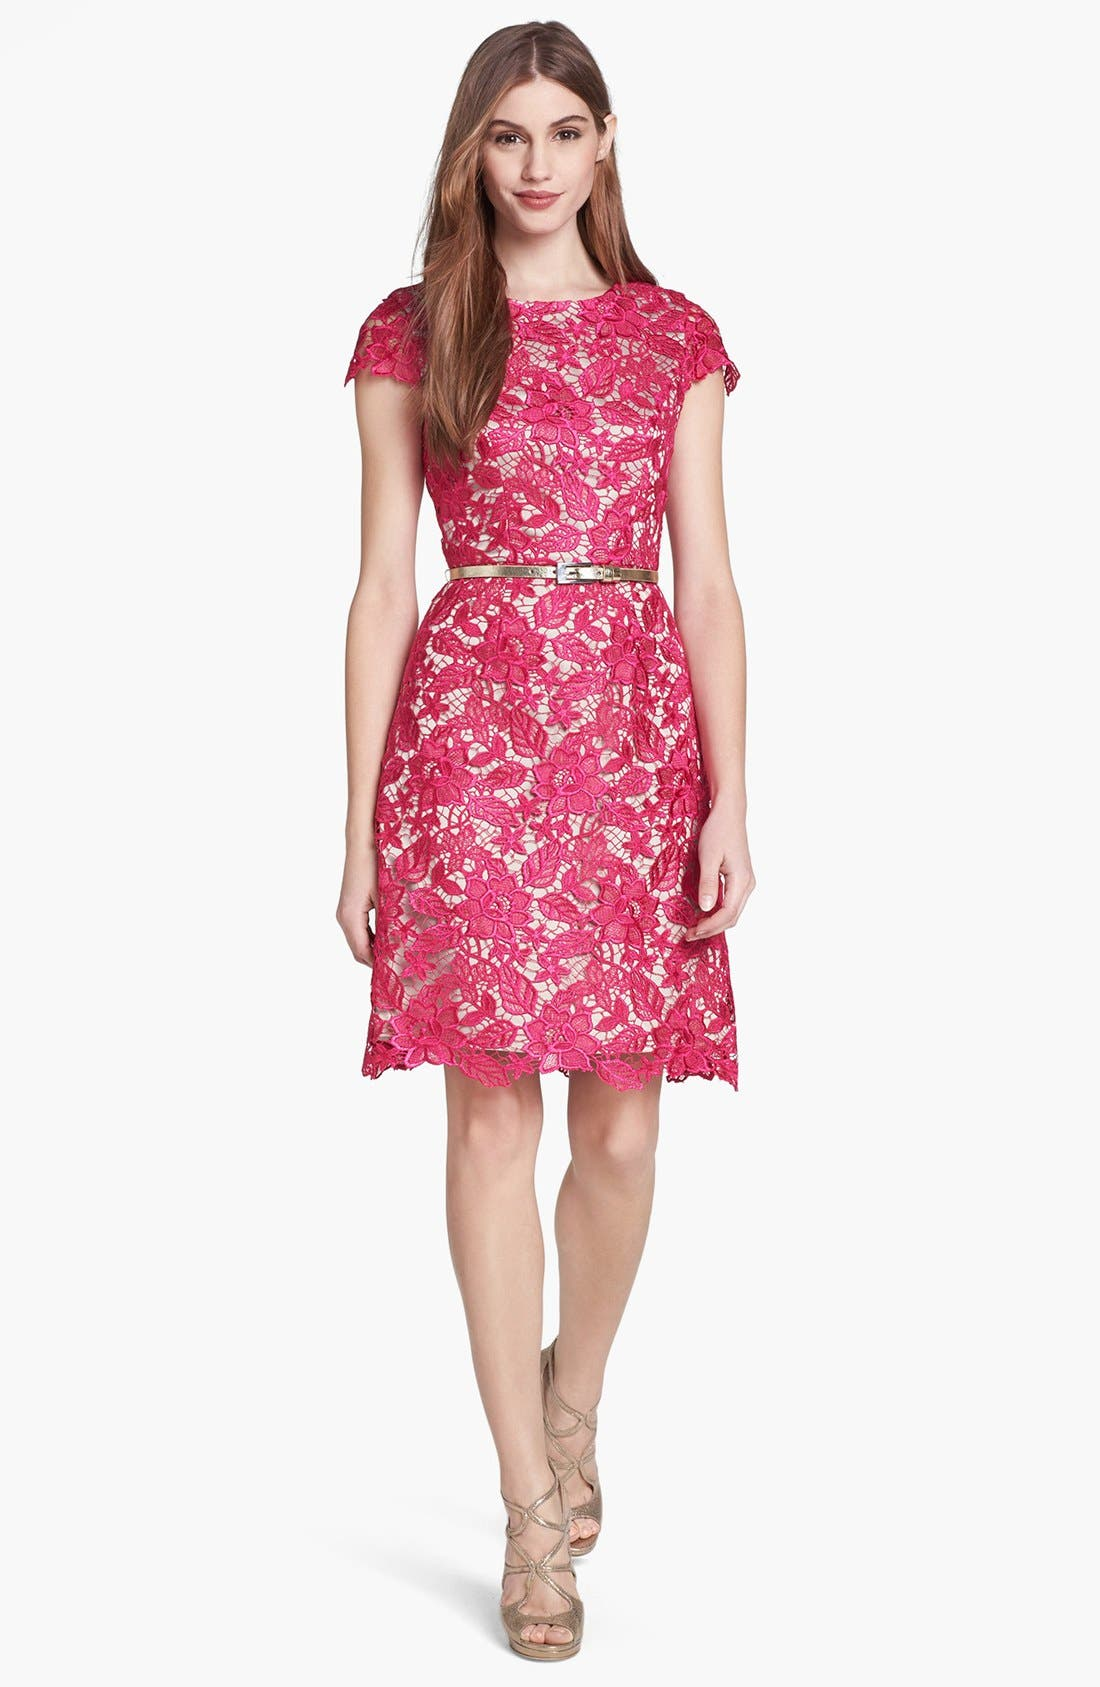 Alternate Image 1 Selected - Eliza J Lace Fit & Flare Dress (Petite)